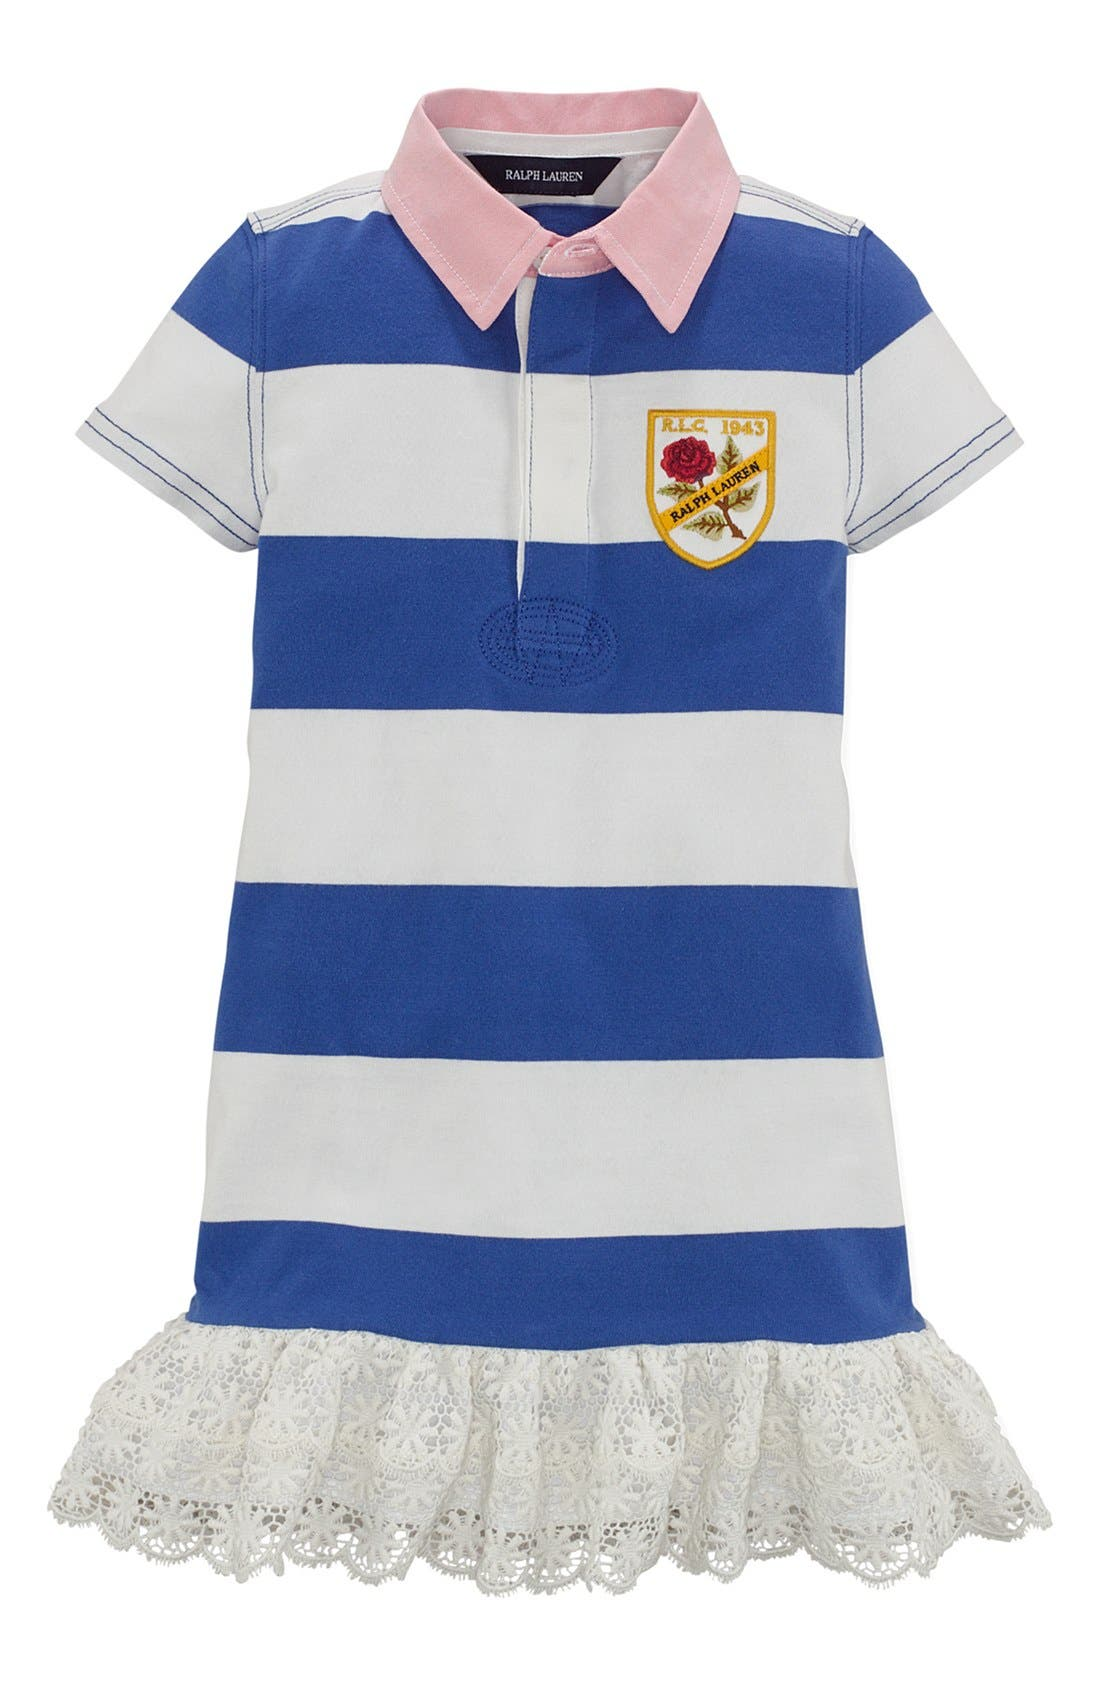 Main Image - Ralph Lauren Jersey Rugby Dress (Toddler Girls)